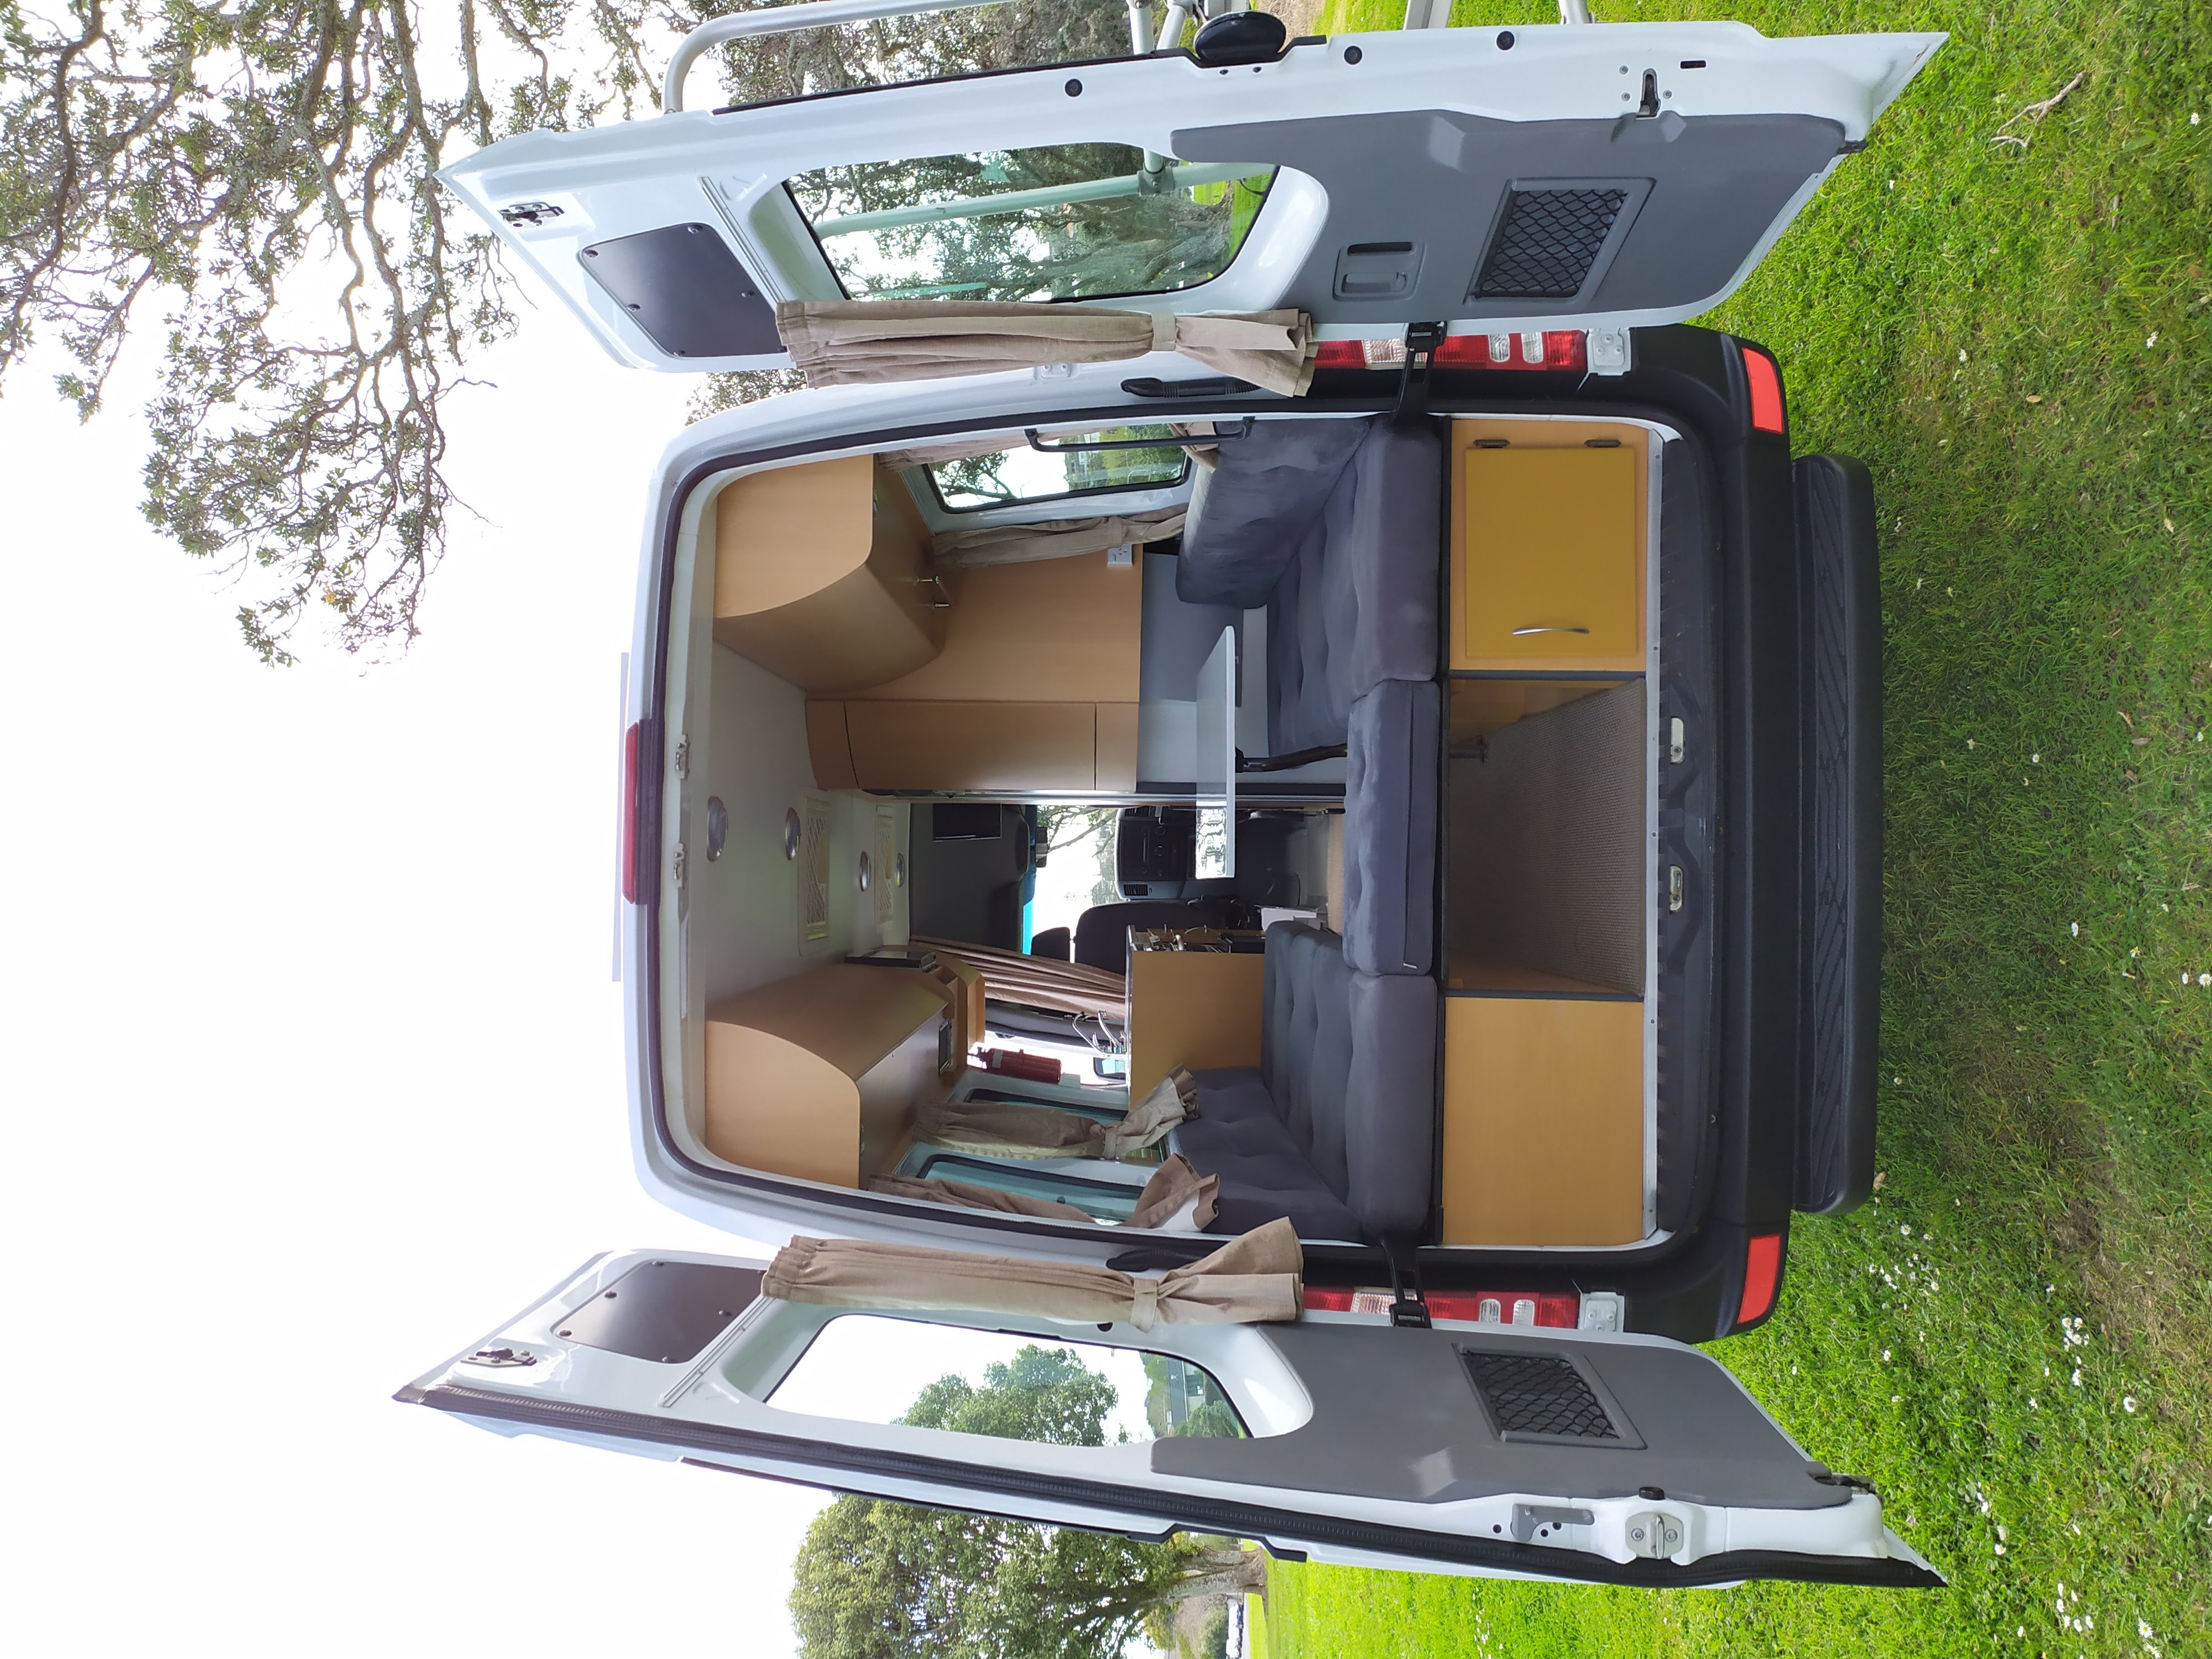 With the rear doors open the living area in back offer a walkthrough or U shaped arrangement.. Mercedes-Benz 313 Sprinter LWB Motorhome 2011